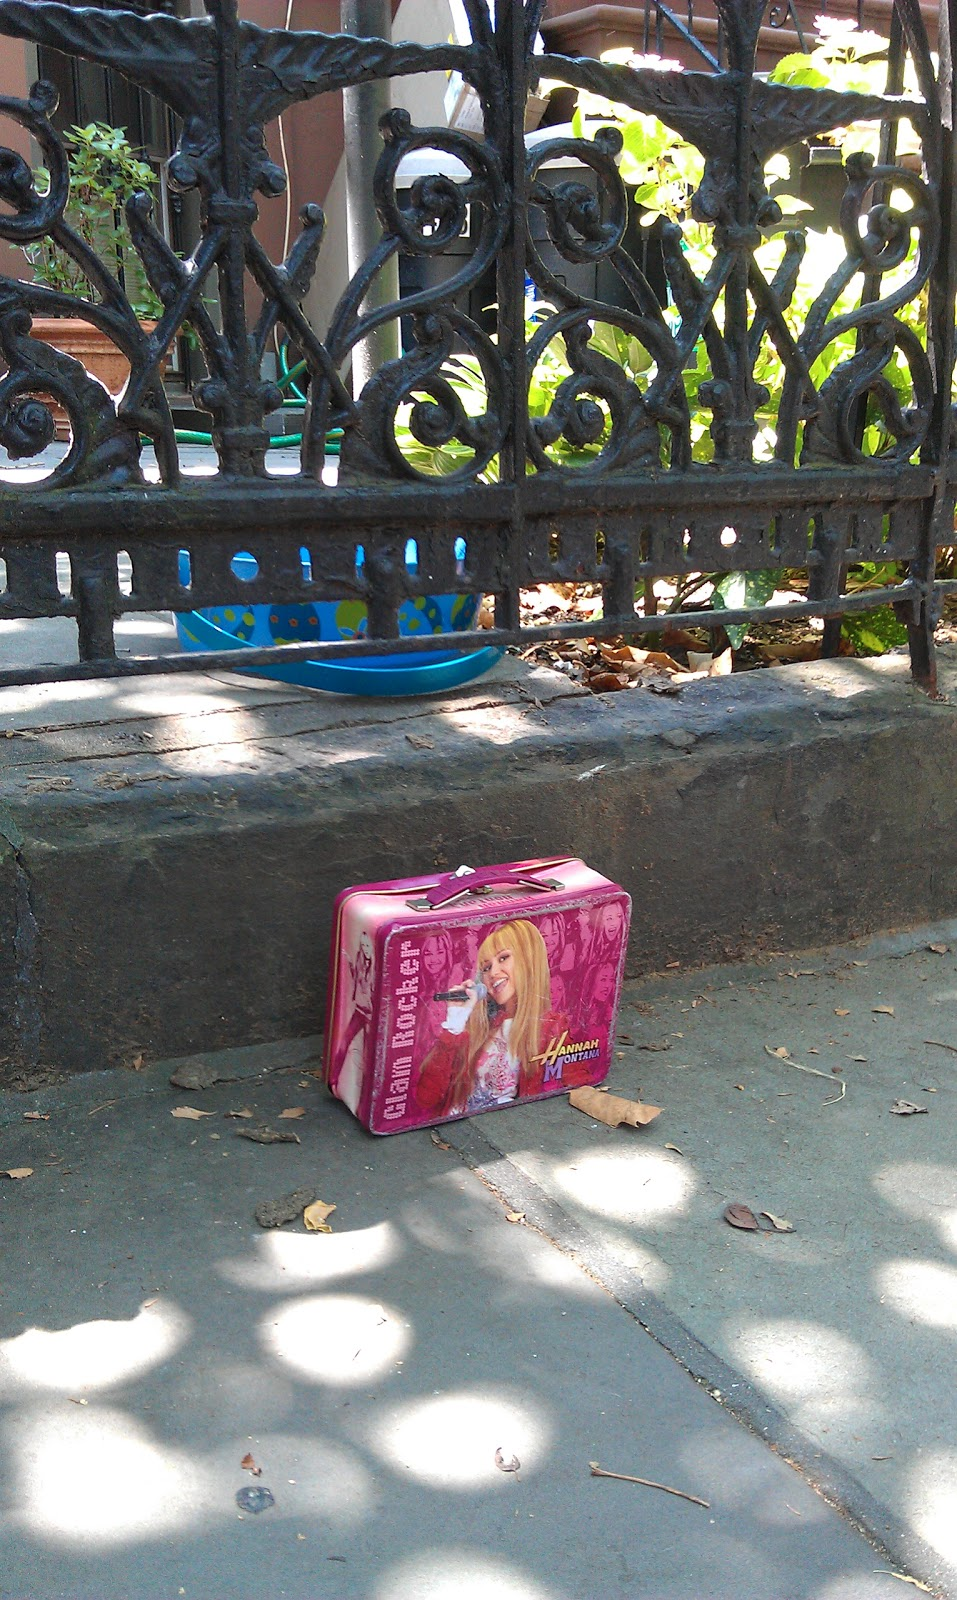 Toys For Tweens 2012 : Abandoned toys in brooklyn a sad photo study